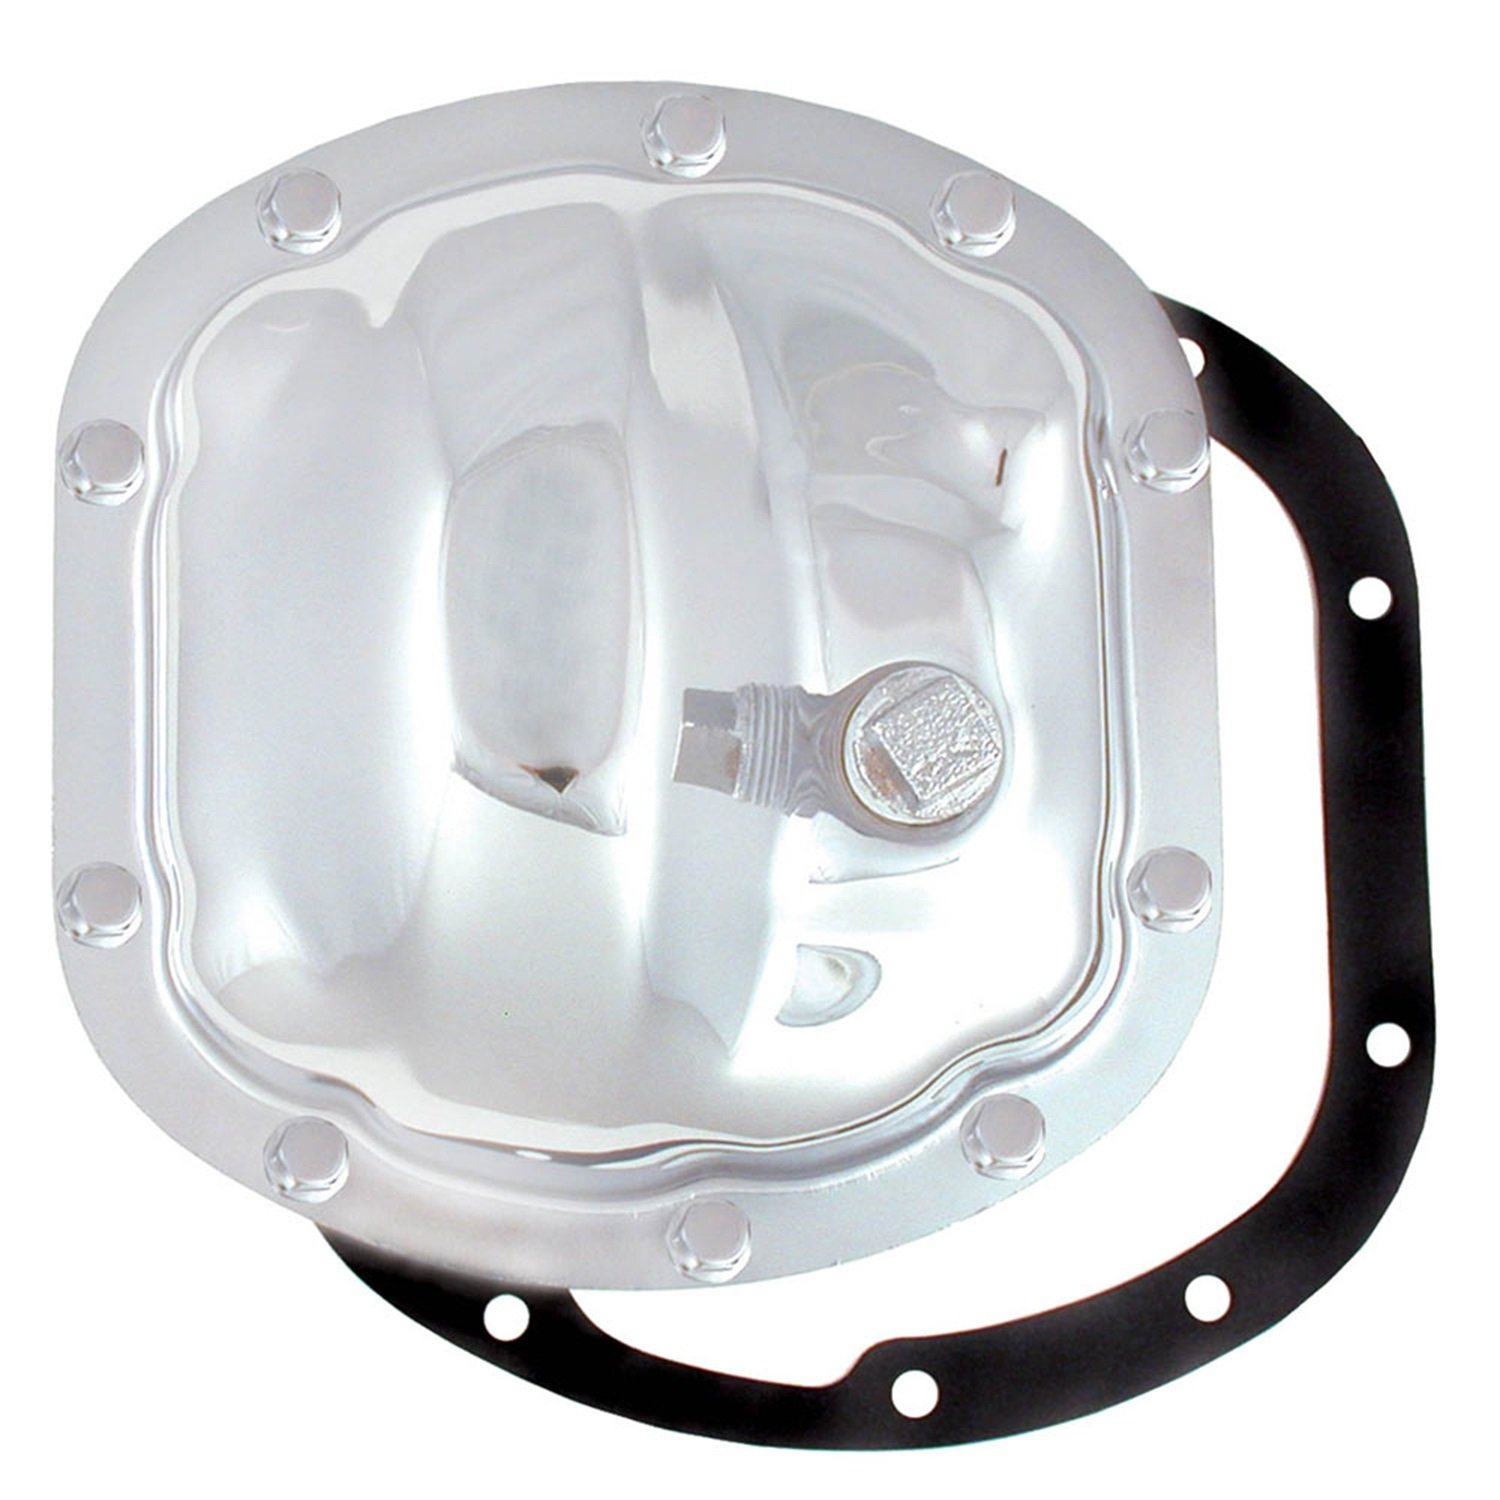 Spectre Performance 6081 Differential Cover for Dana 30 SPE-6081